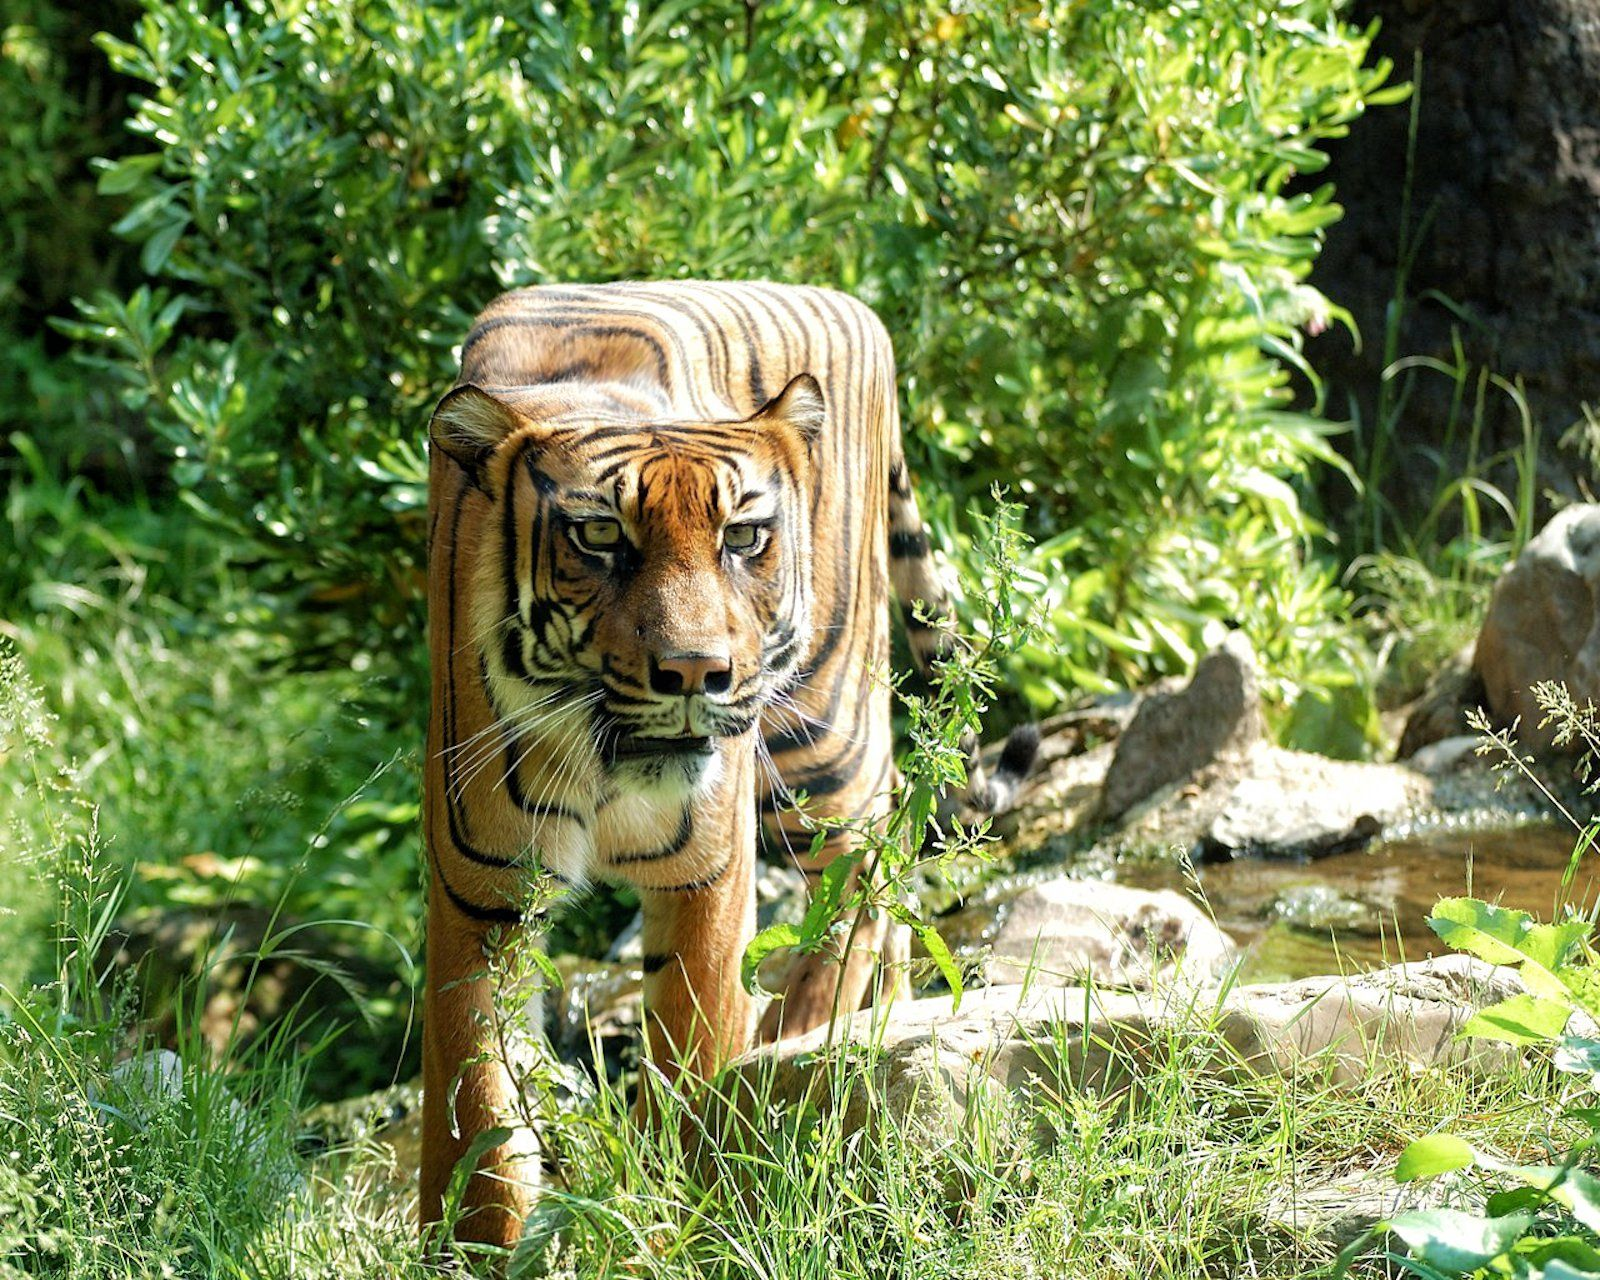 Minecraft in Real Life Retoucher Turns Real Animals Into